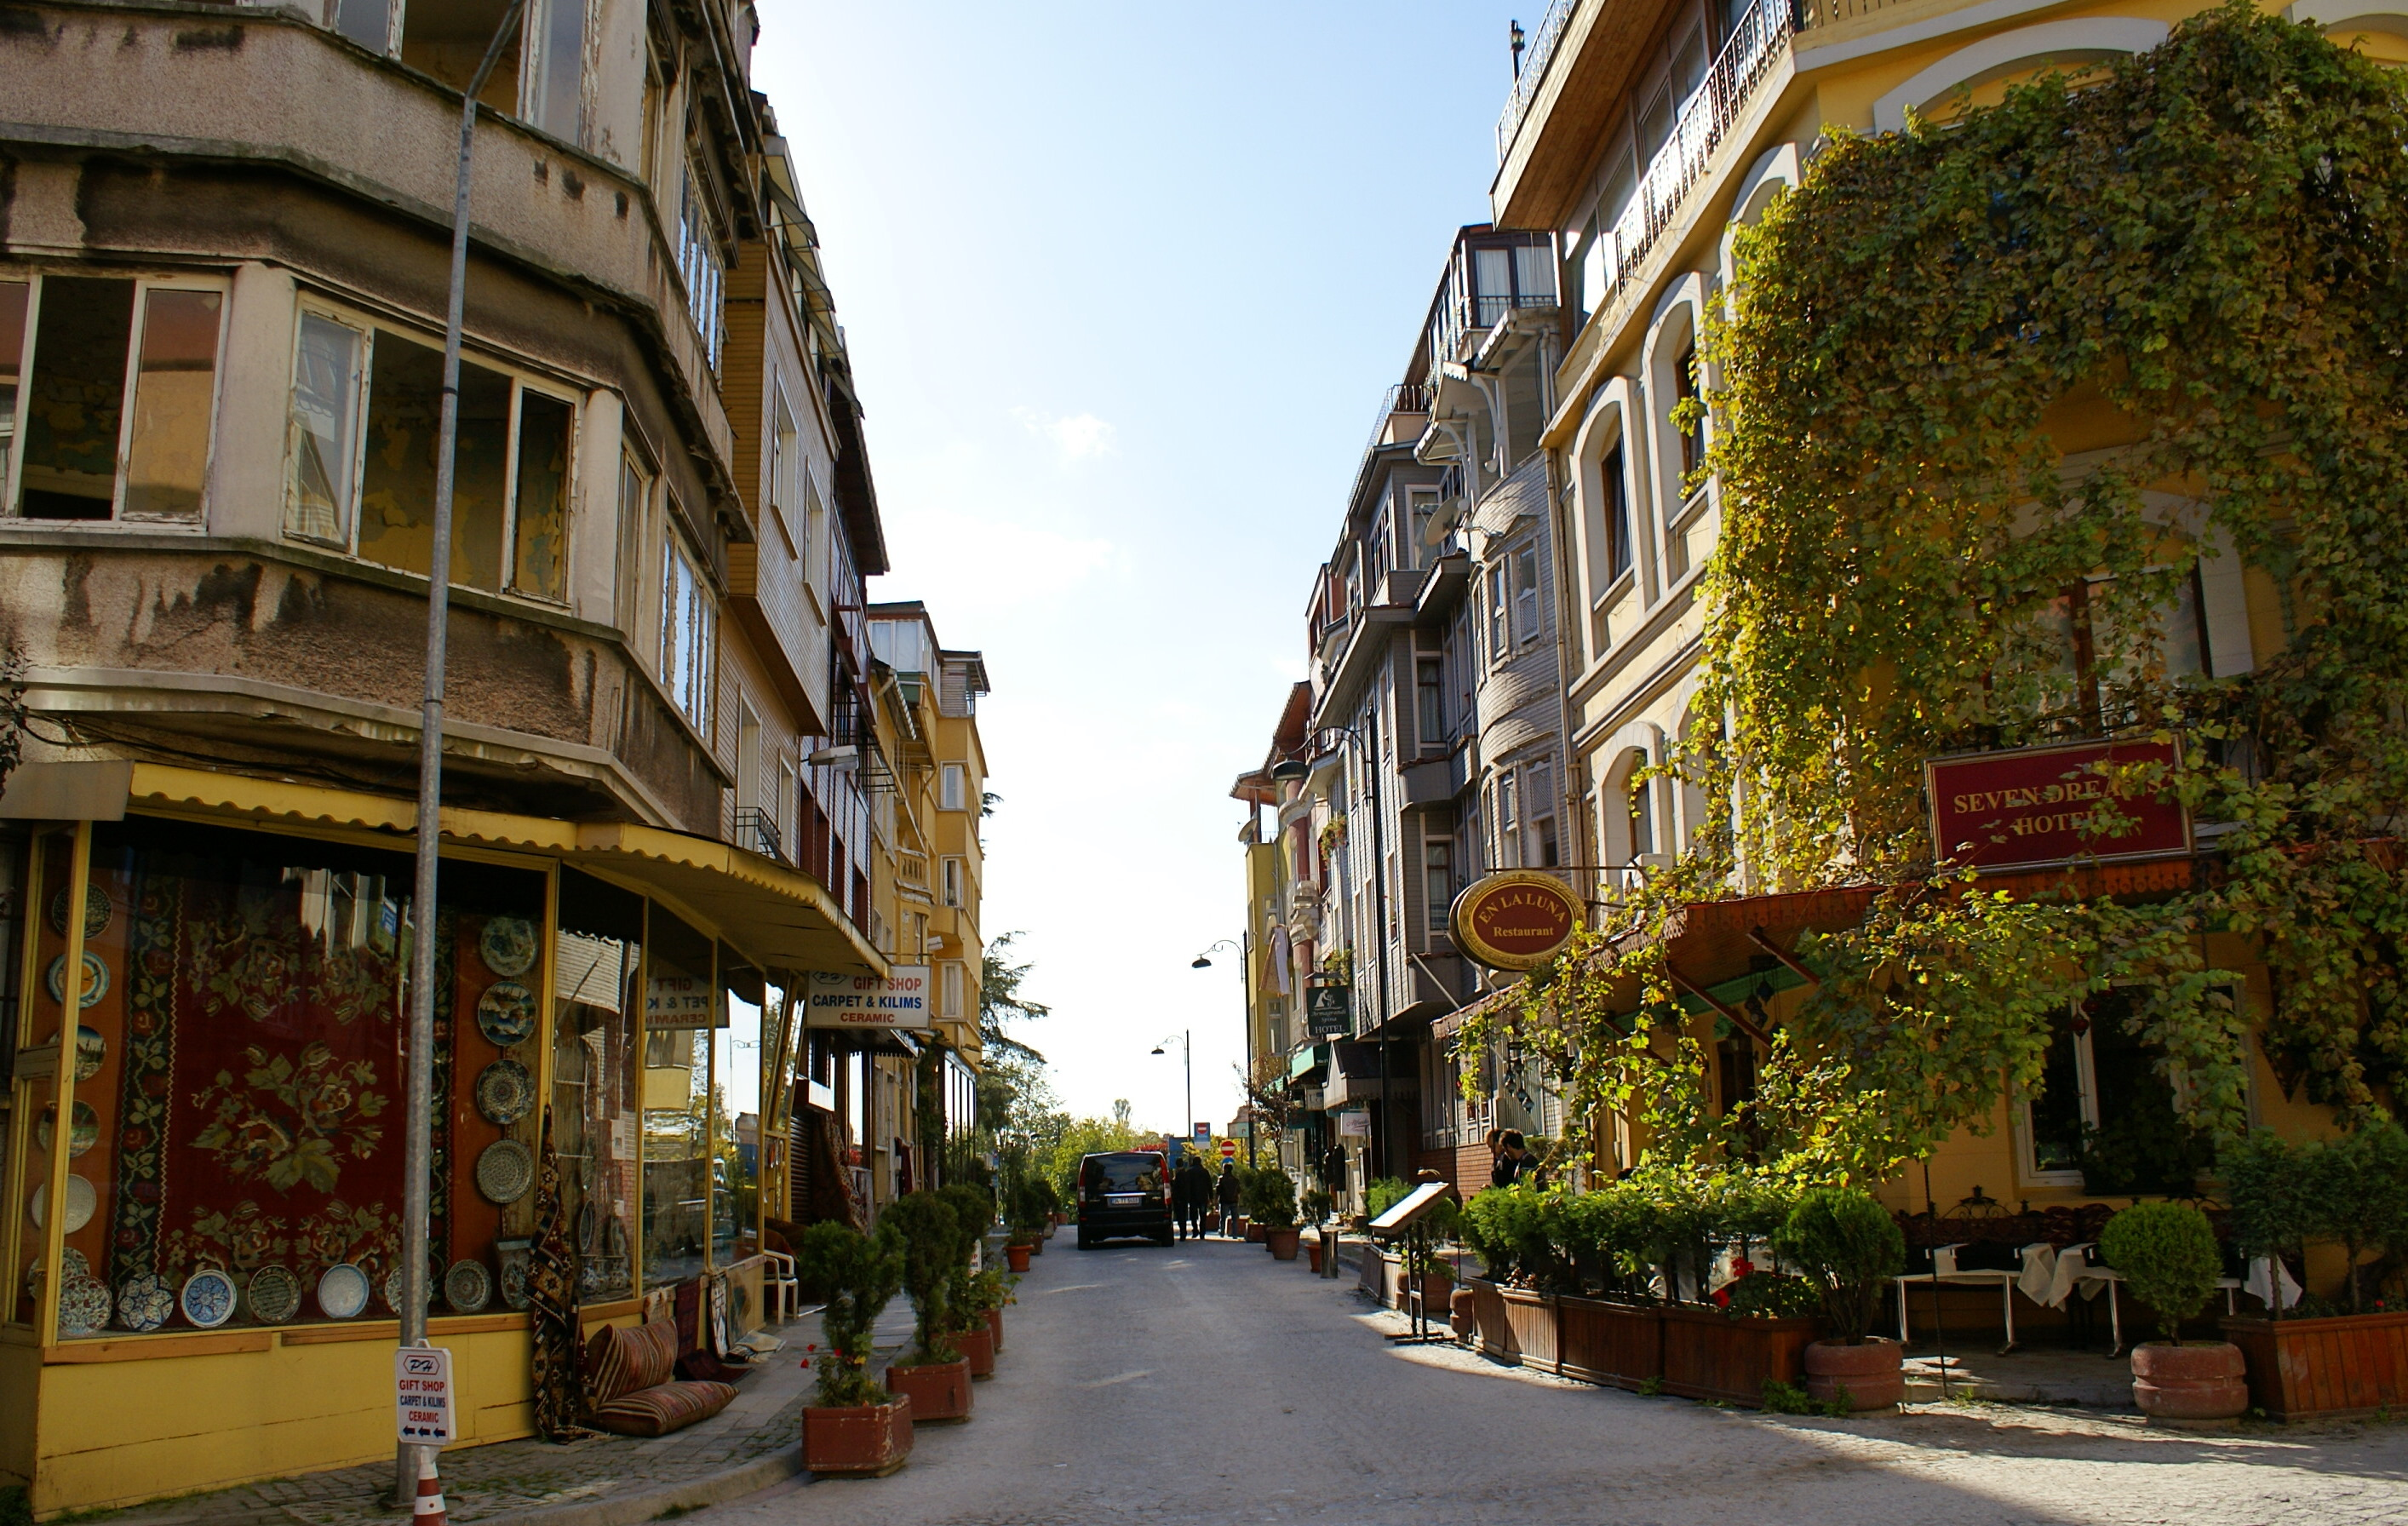 A not-so-busy street in Sultanahmet